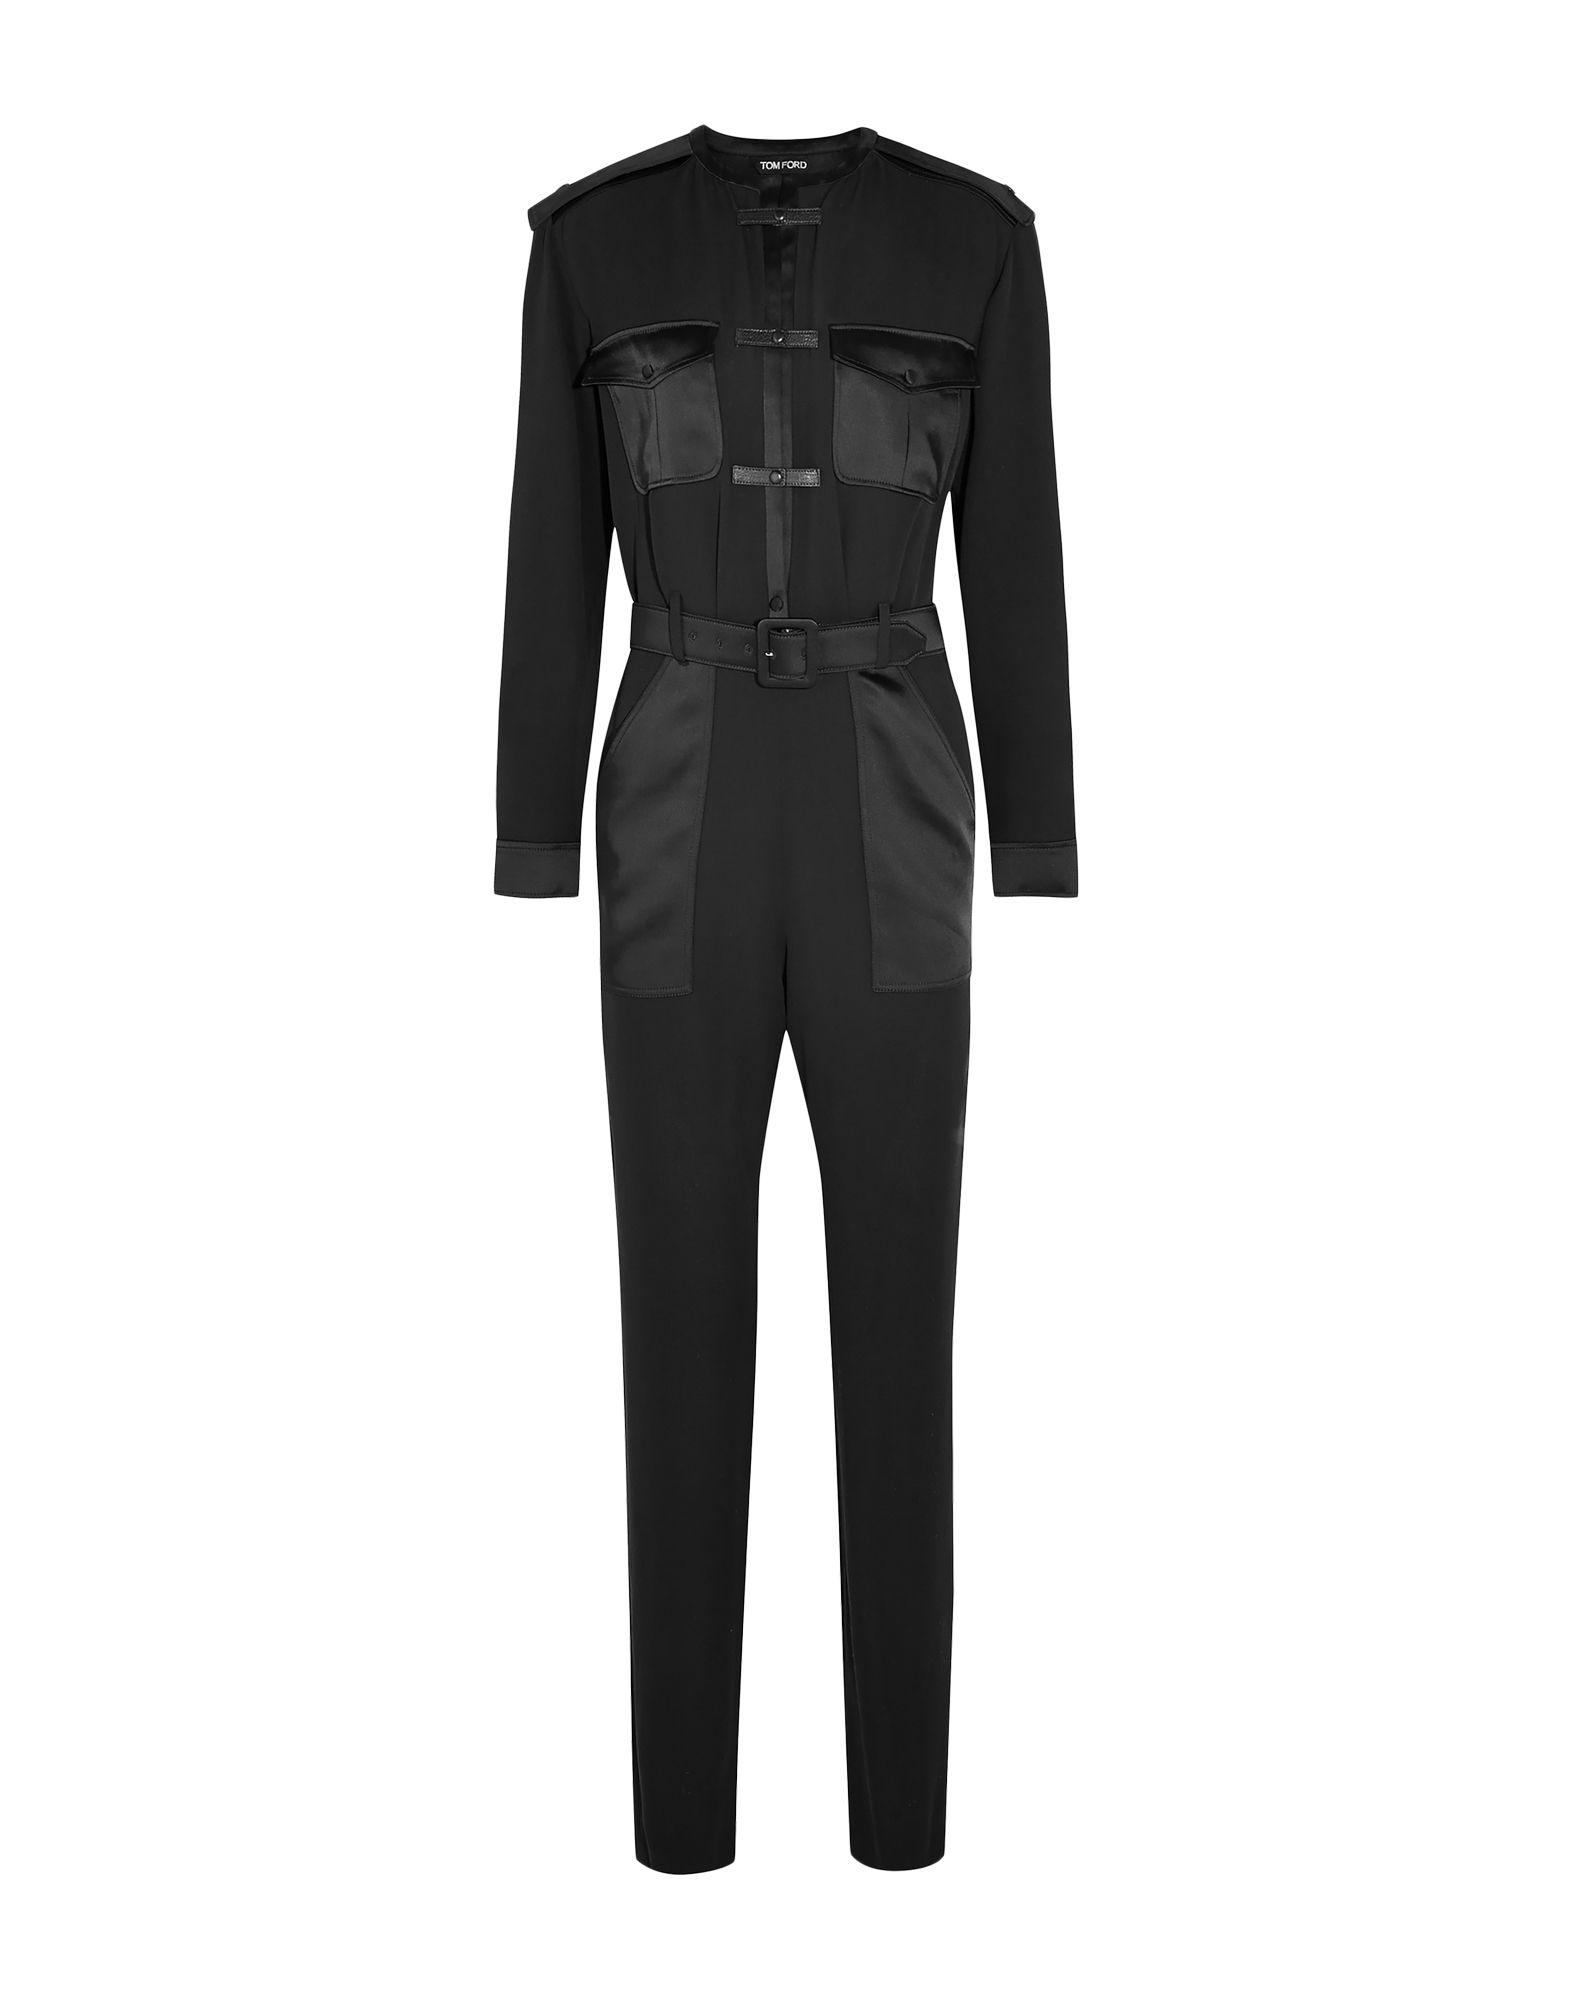 9dc09fbb12a9 Tom Ford - Black Jumpsuit - Lyst. View fullscreen